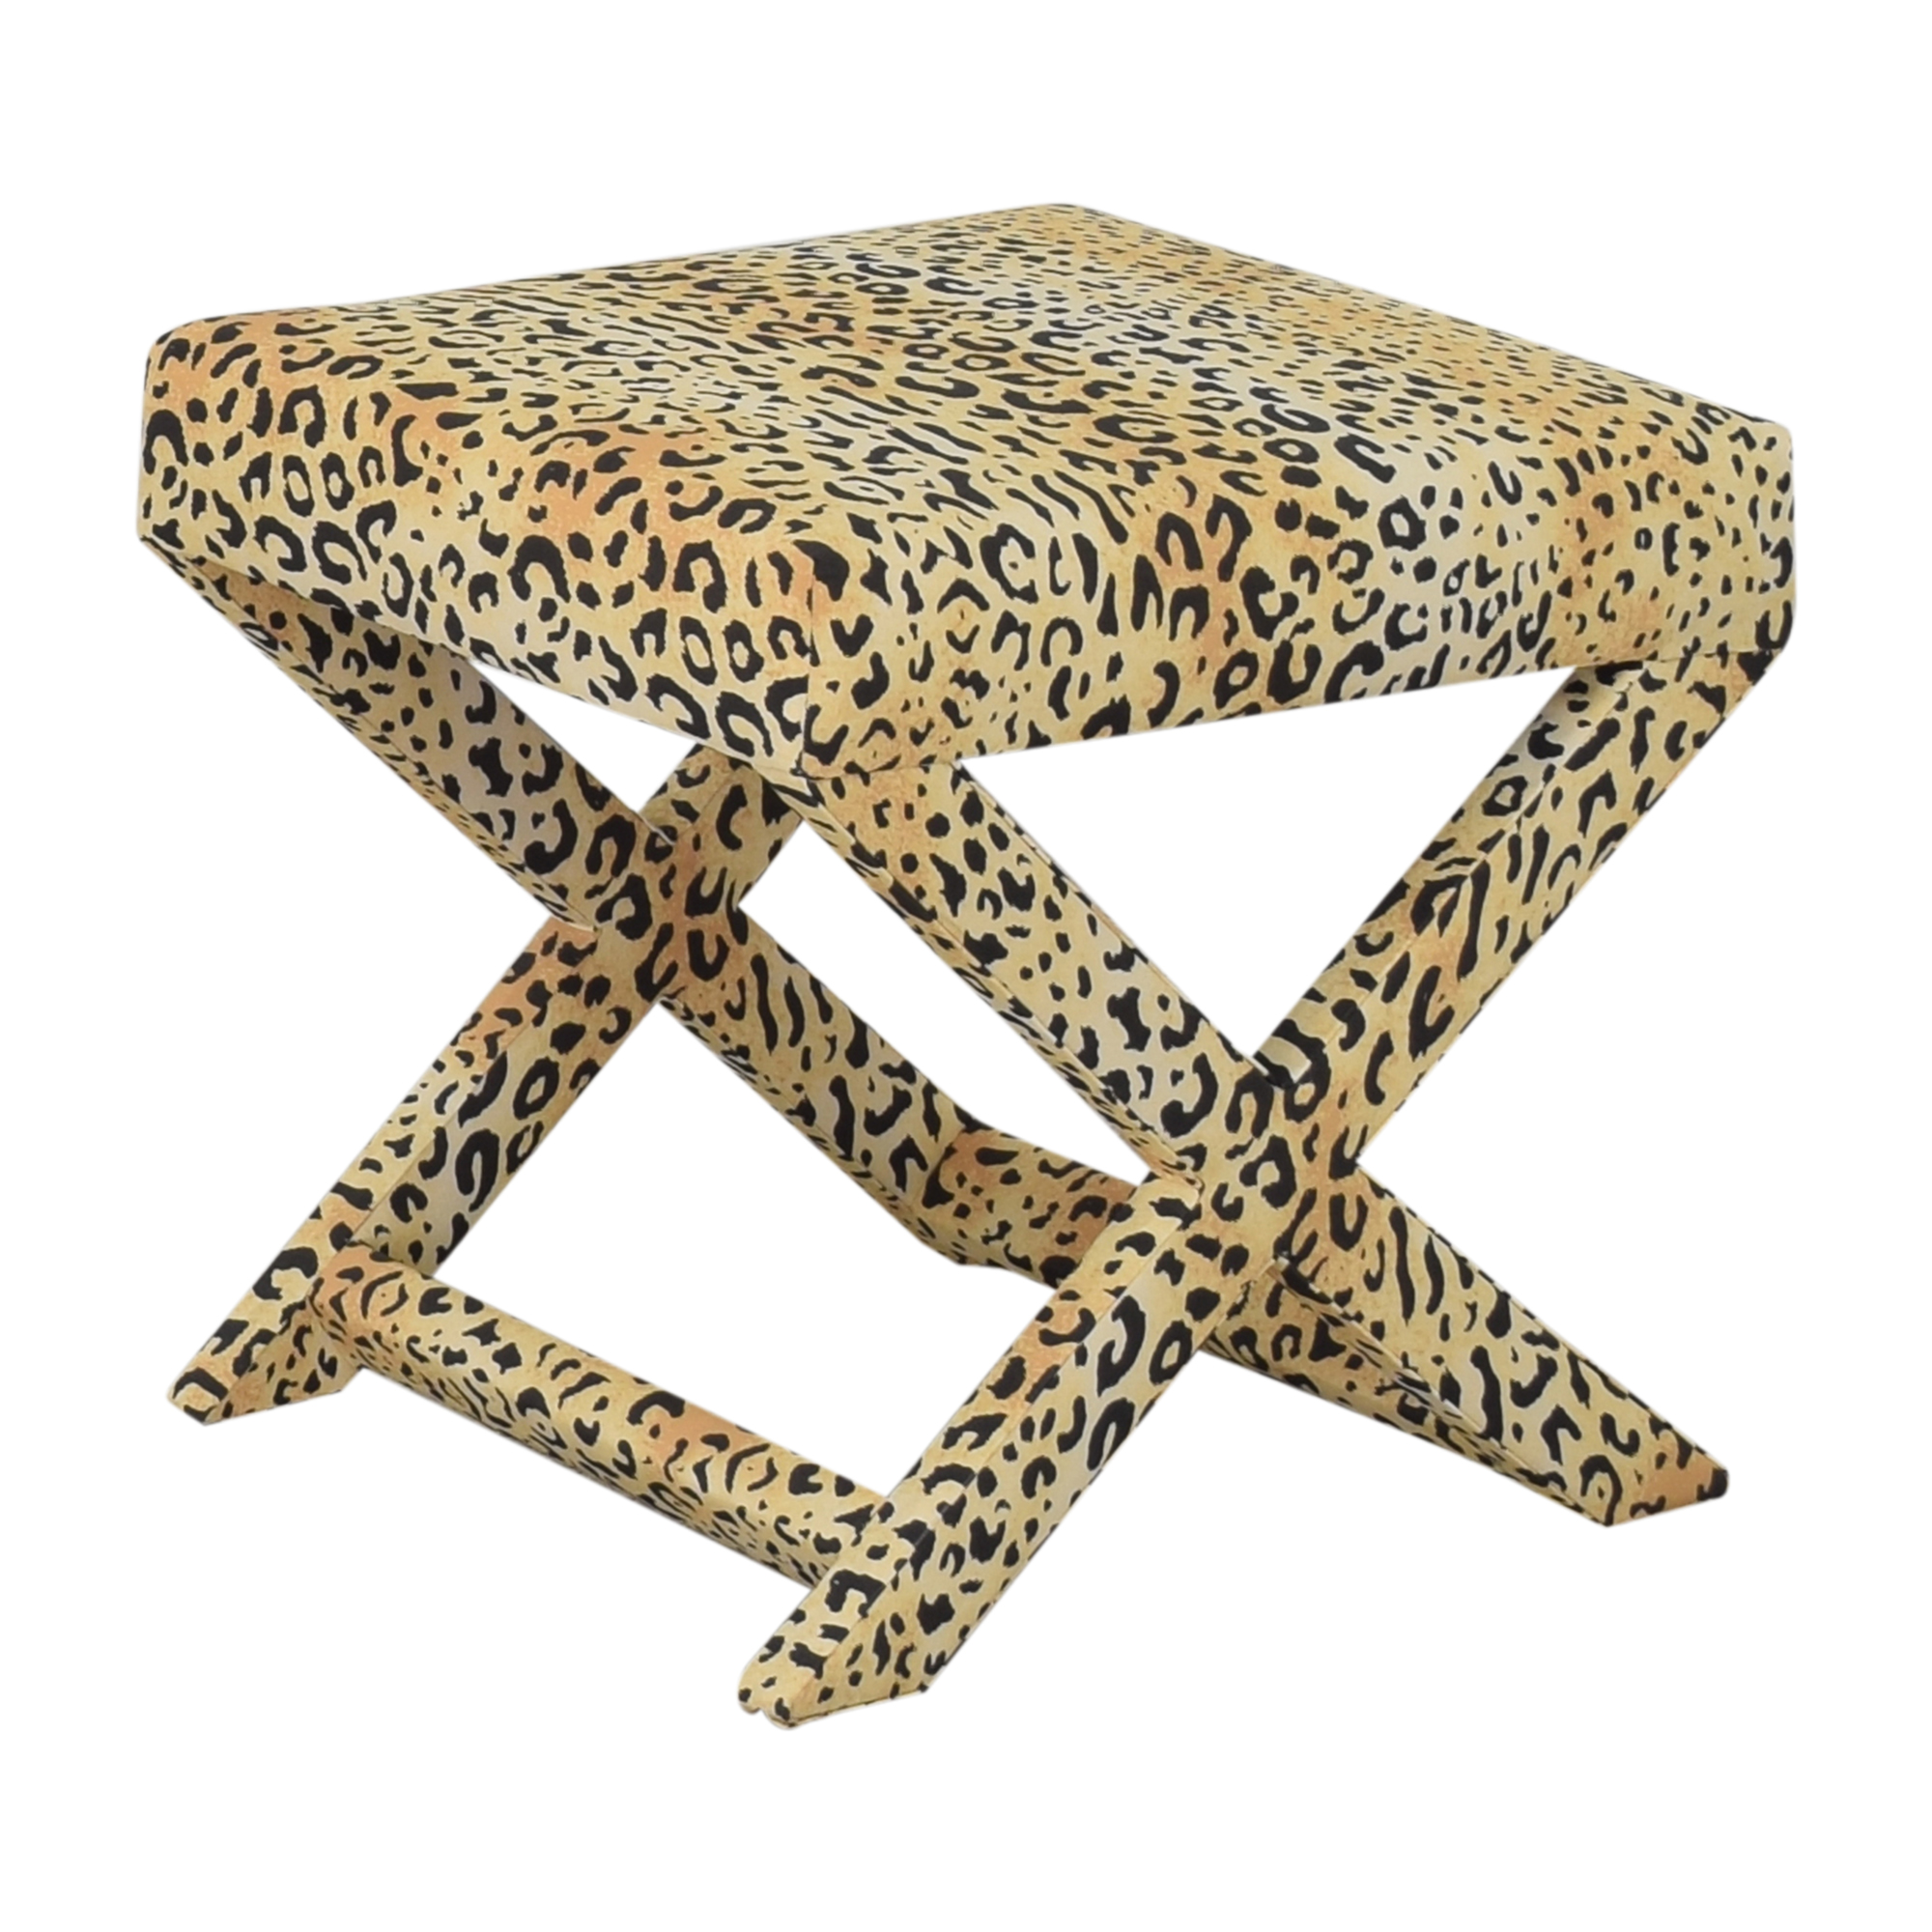 The Inside The Inside Leopard X Bench dimensions